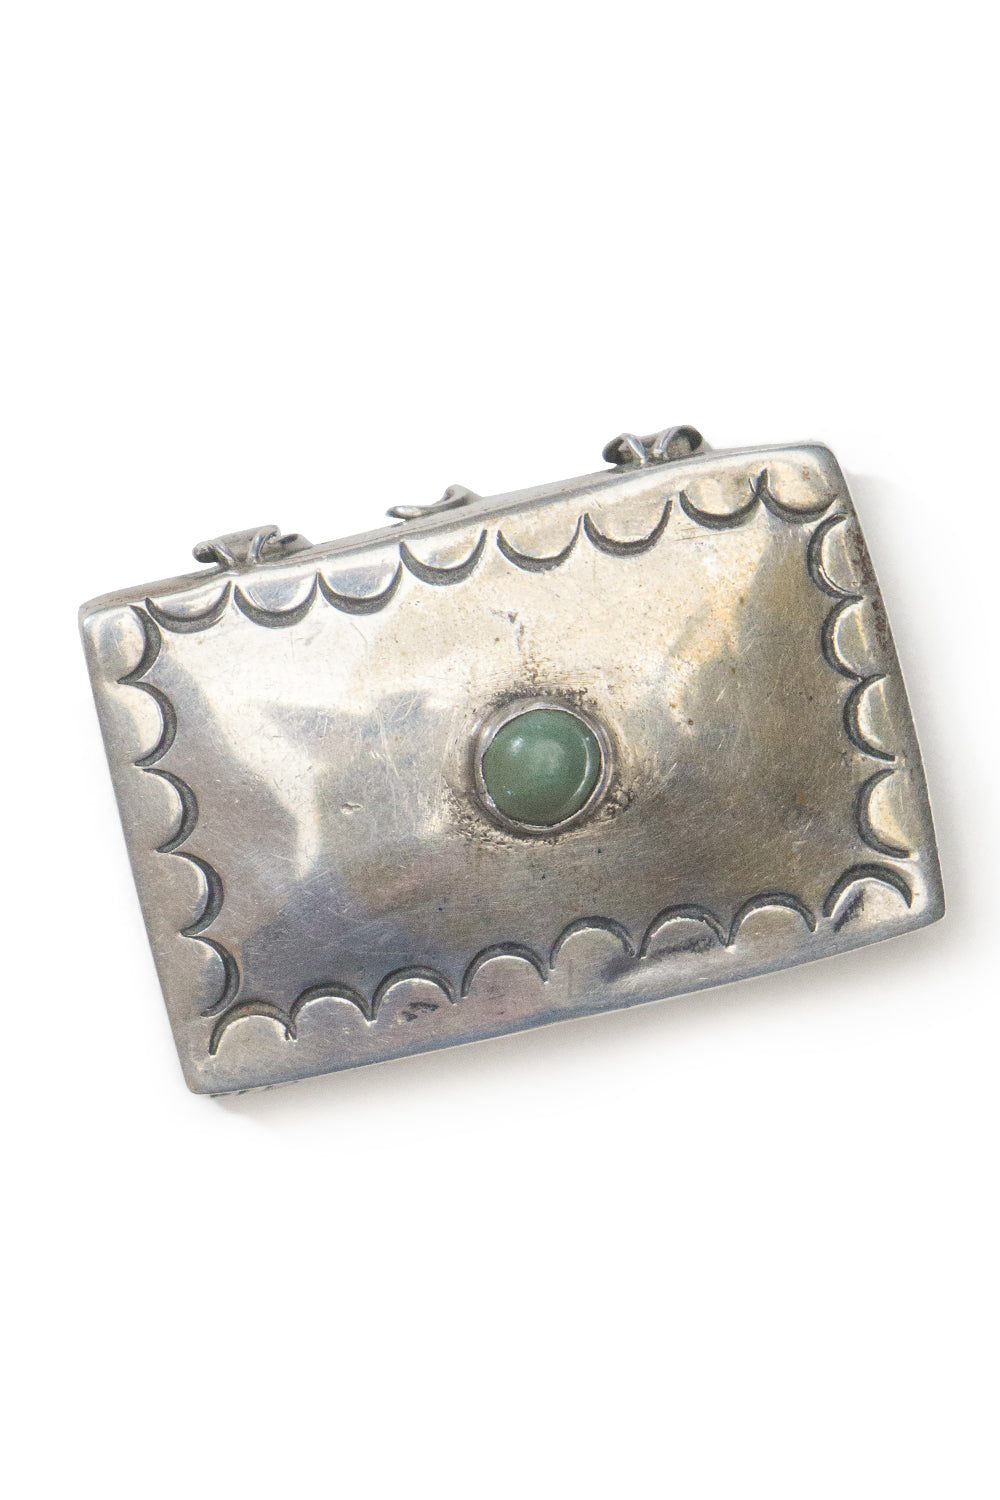 Miscellaneous Box, Sterling Silver & Mother of Pearl, Vintage, 156